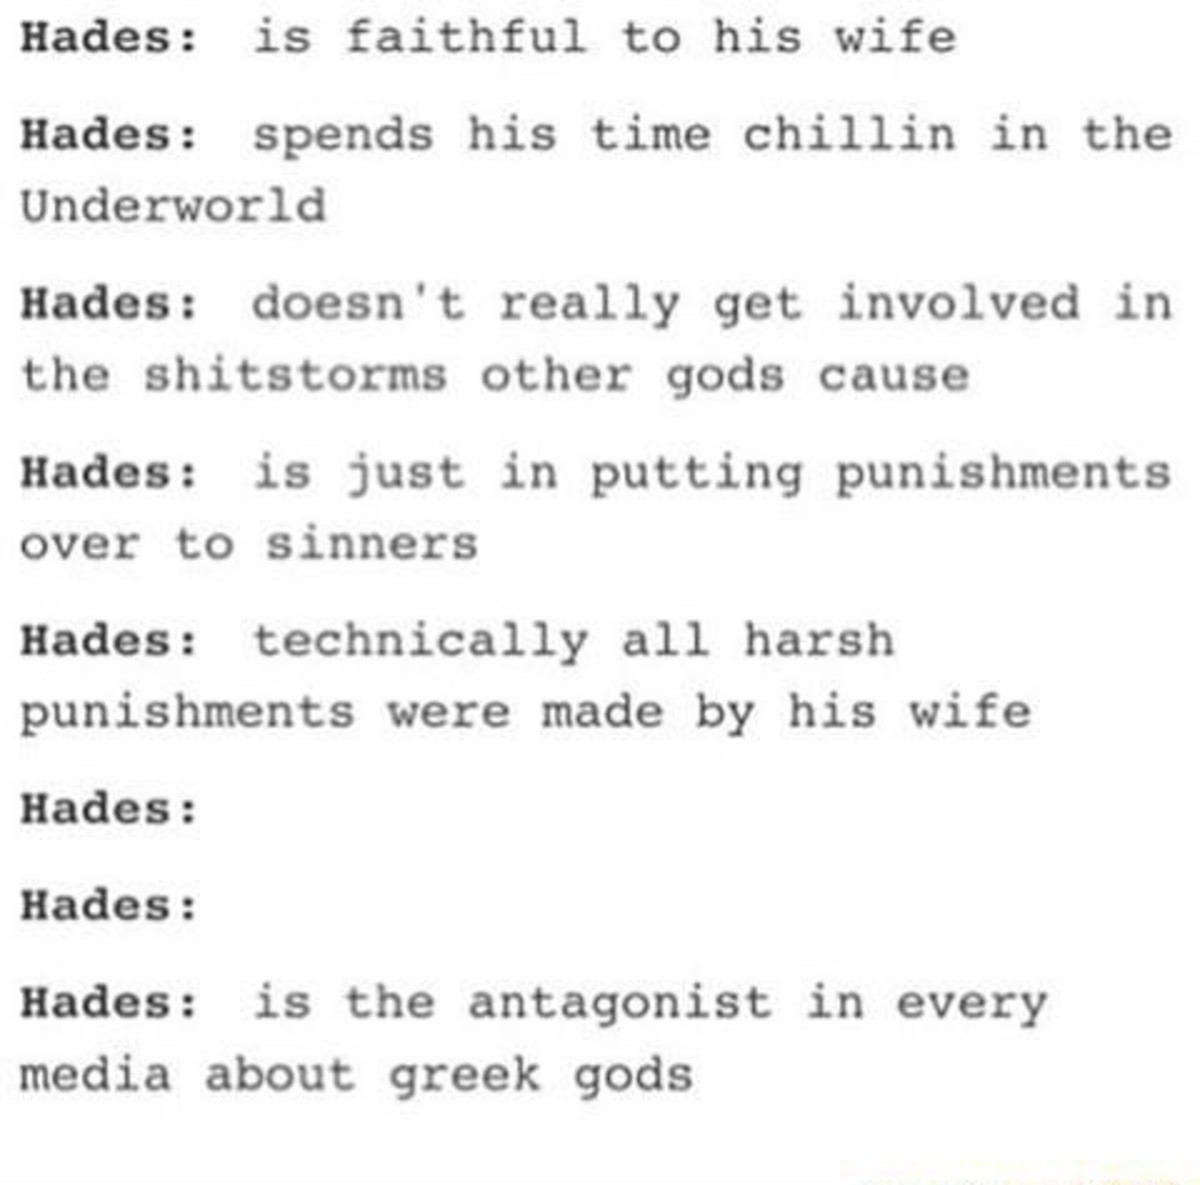 Hades. Disney and Kid Icarus Hades were great, though... hades did try to overthrow zeus, he was also said to be kinda jelous (kinda rightly so) about the fact that zeus became the king of all gods and ruled over heav